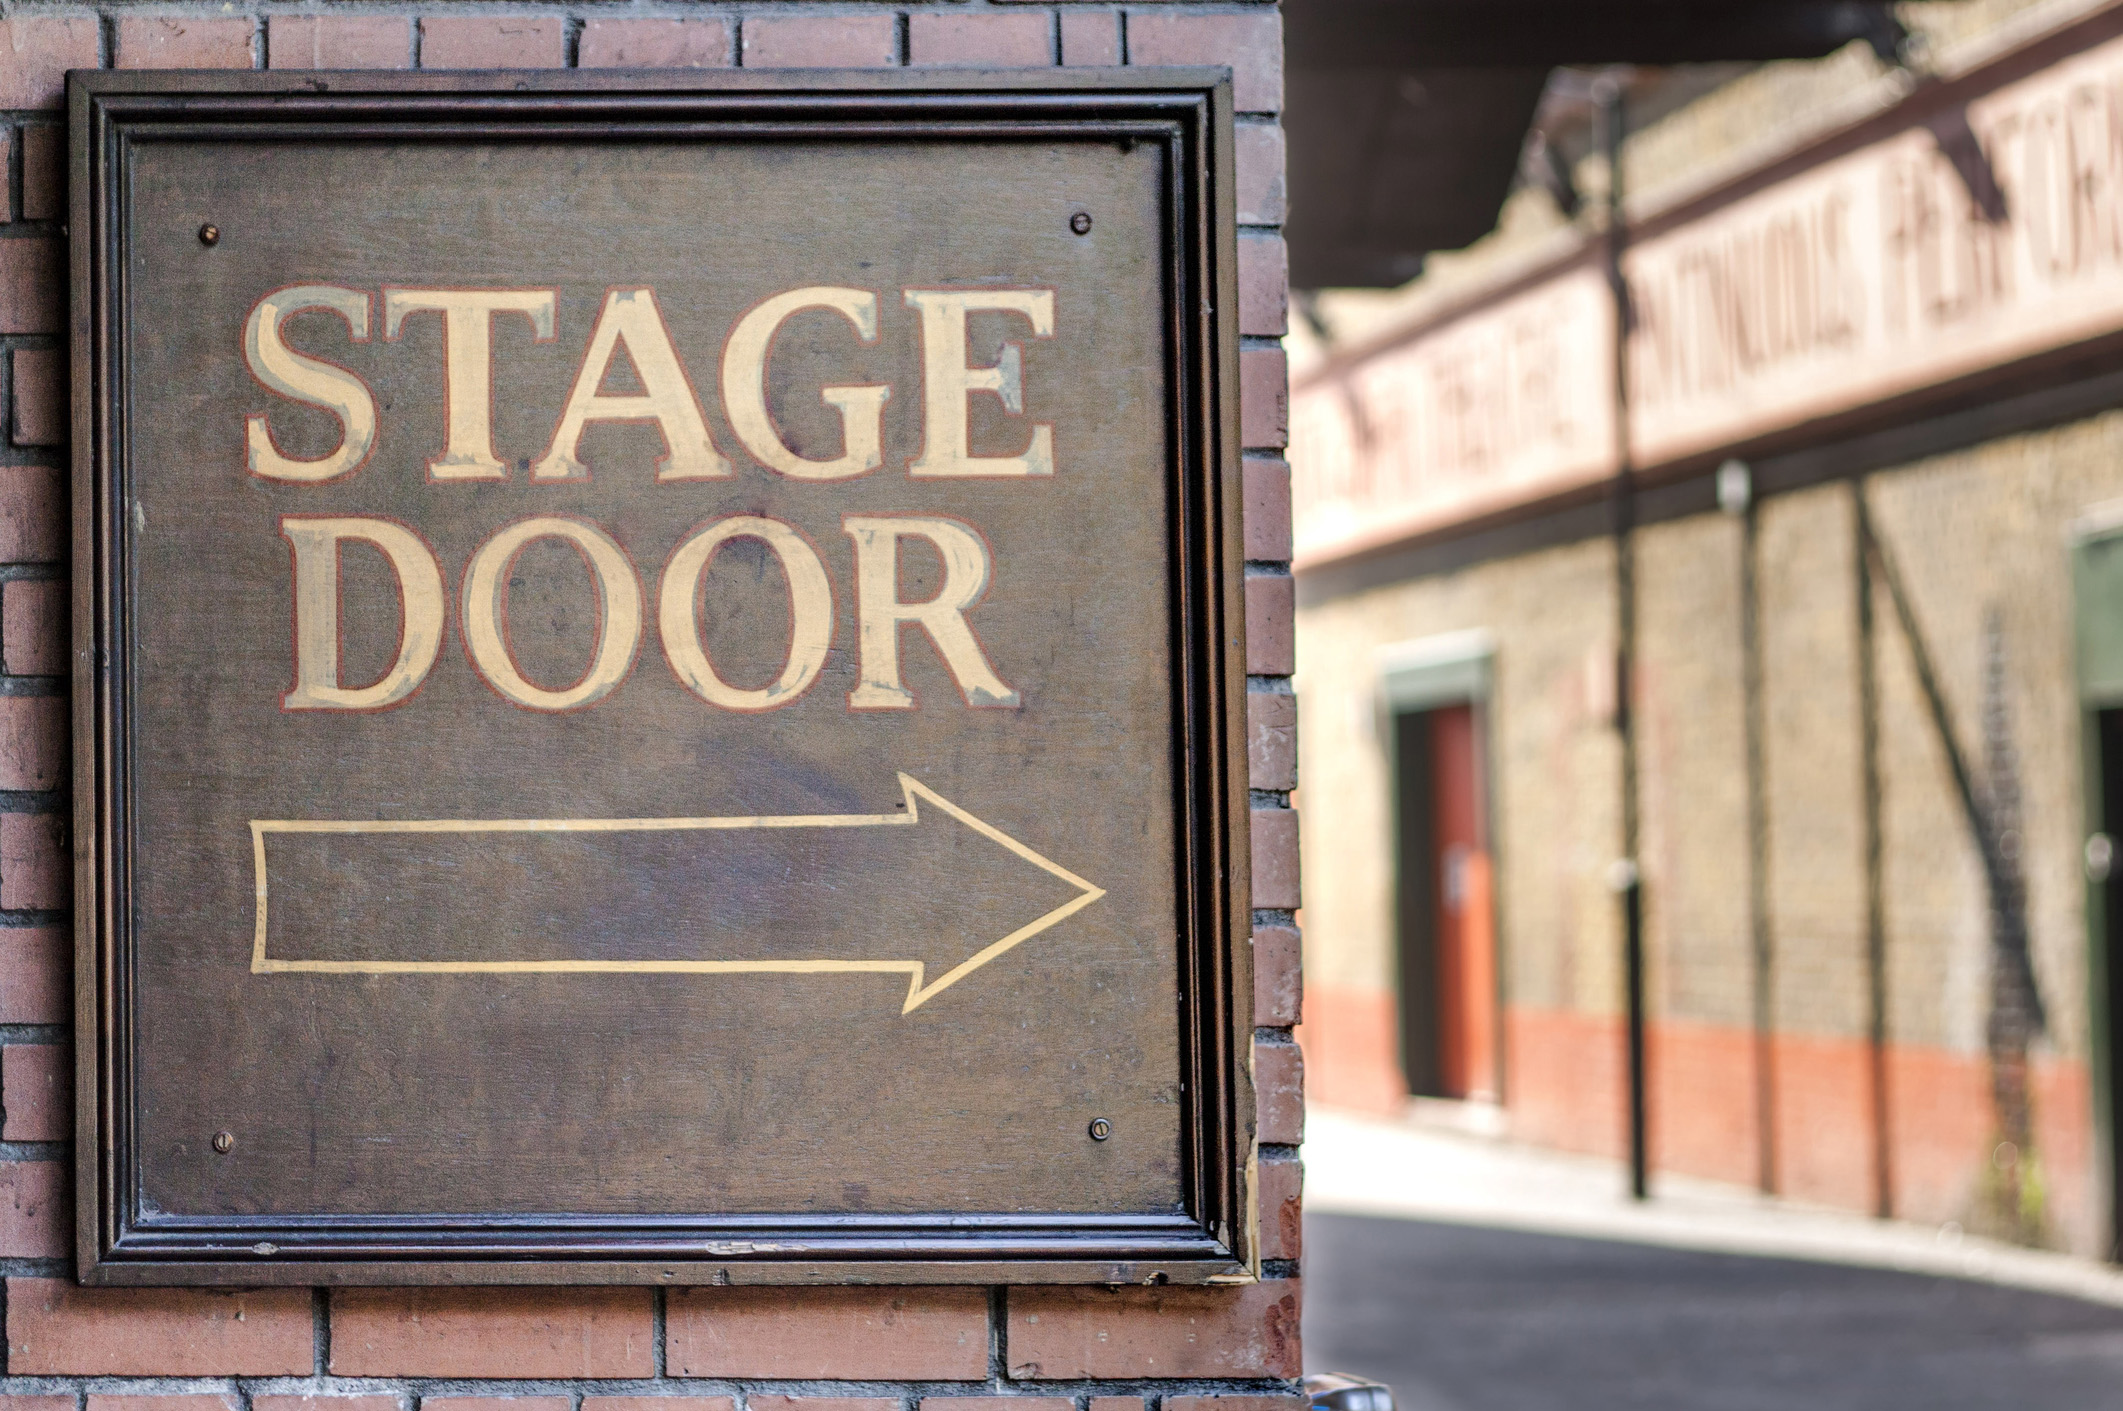 stagedoor small